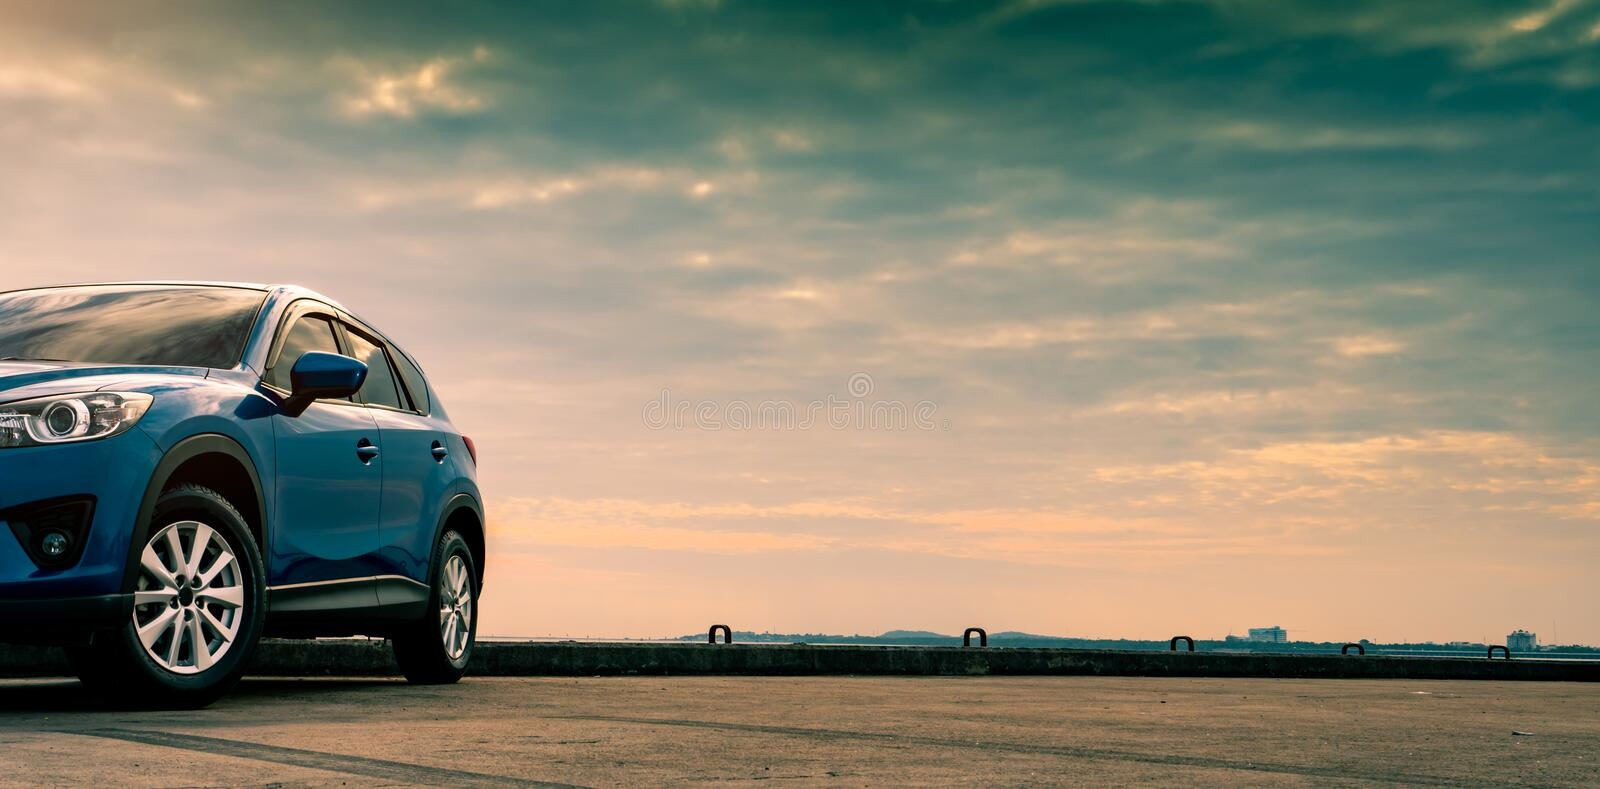 Blue compact SUV car with sport and modern design parked on concrete road by the sea. Hybrid and electric car technology concept. Car parking space. Automotive stock photos